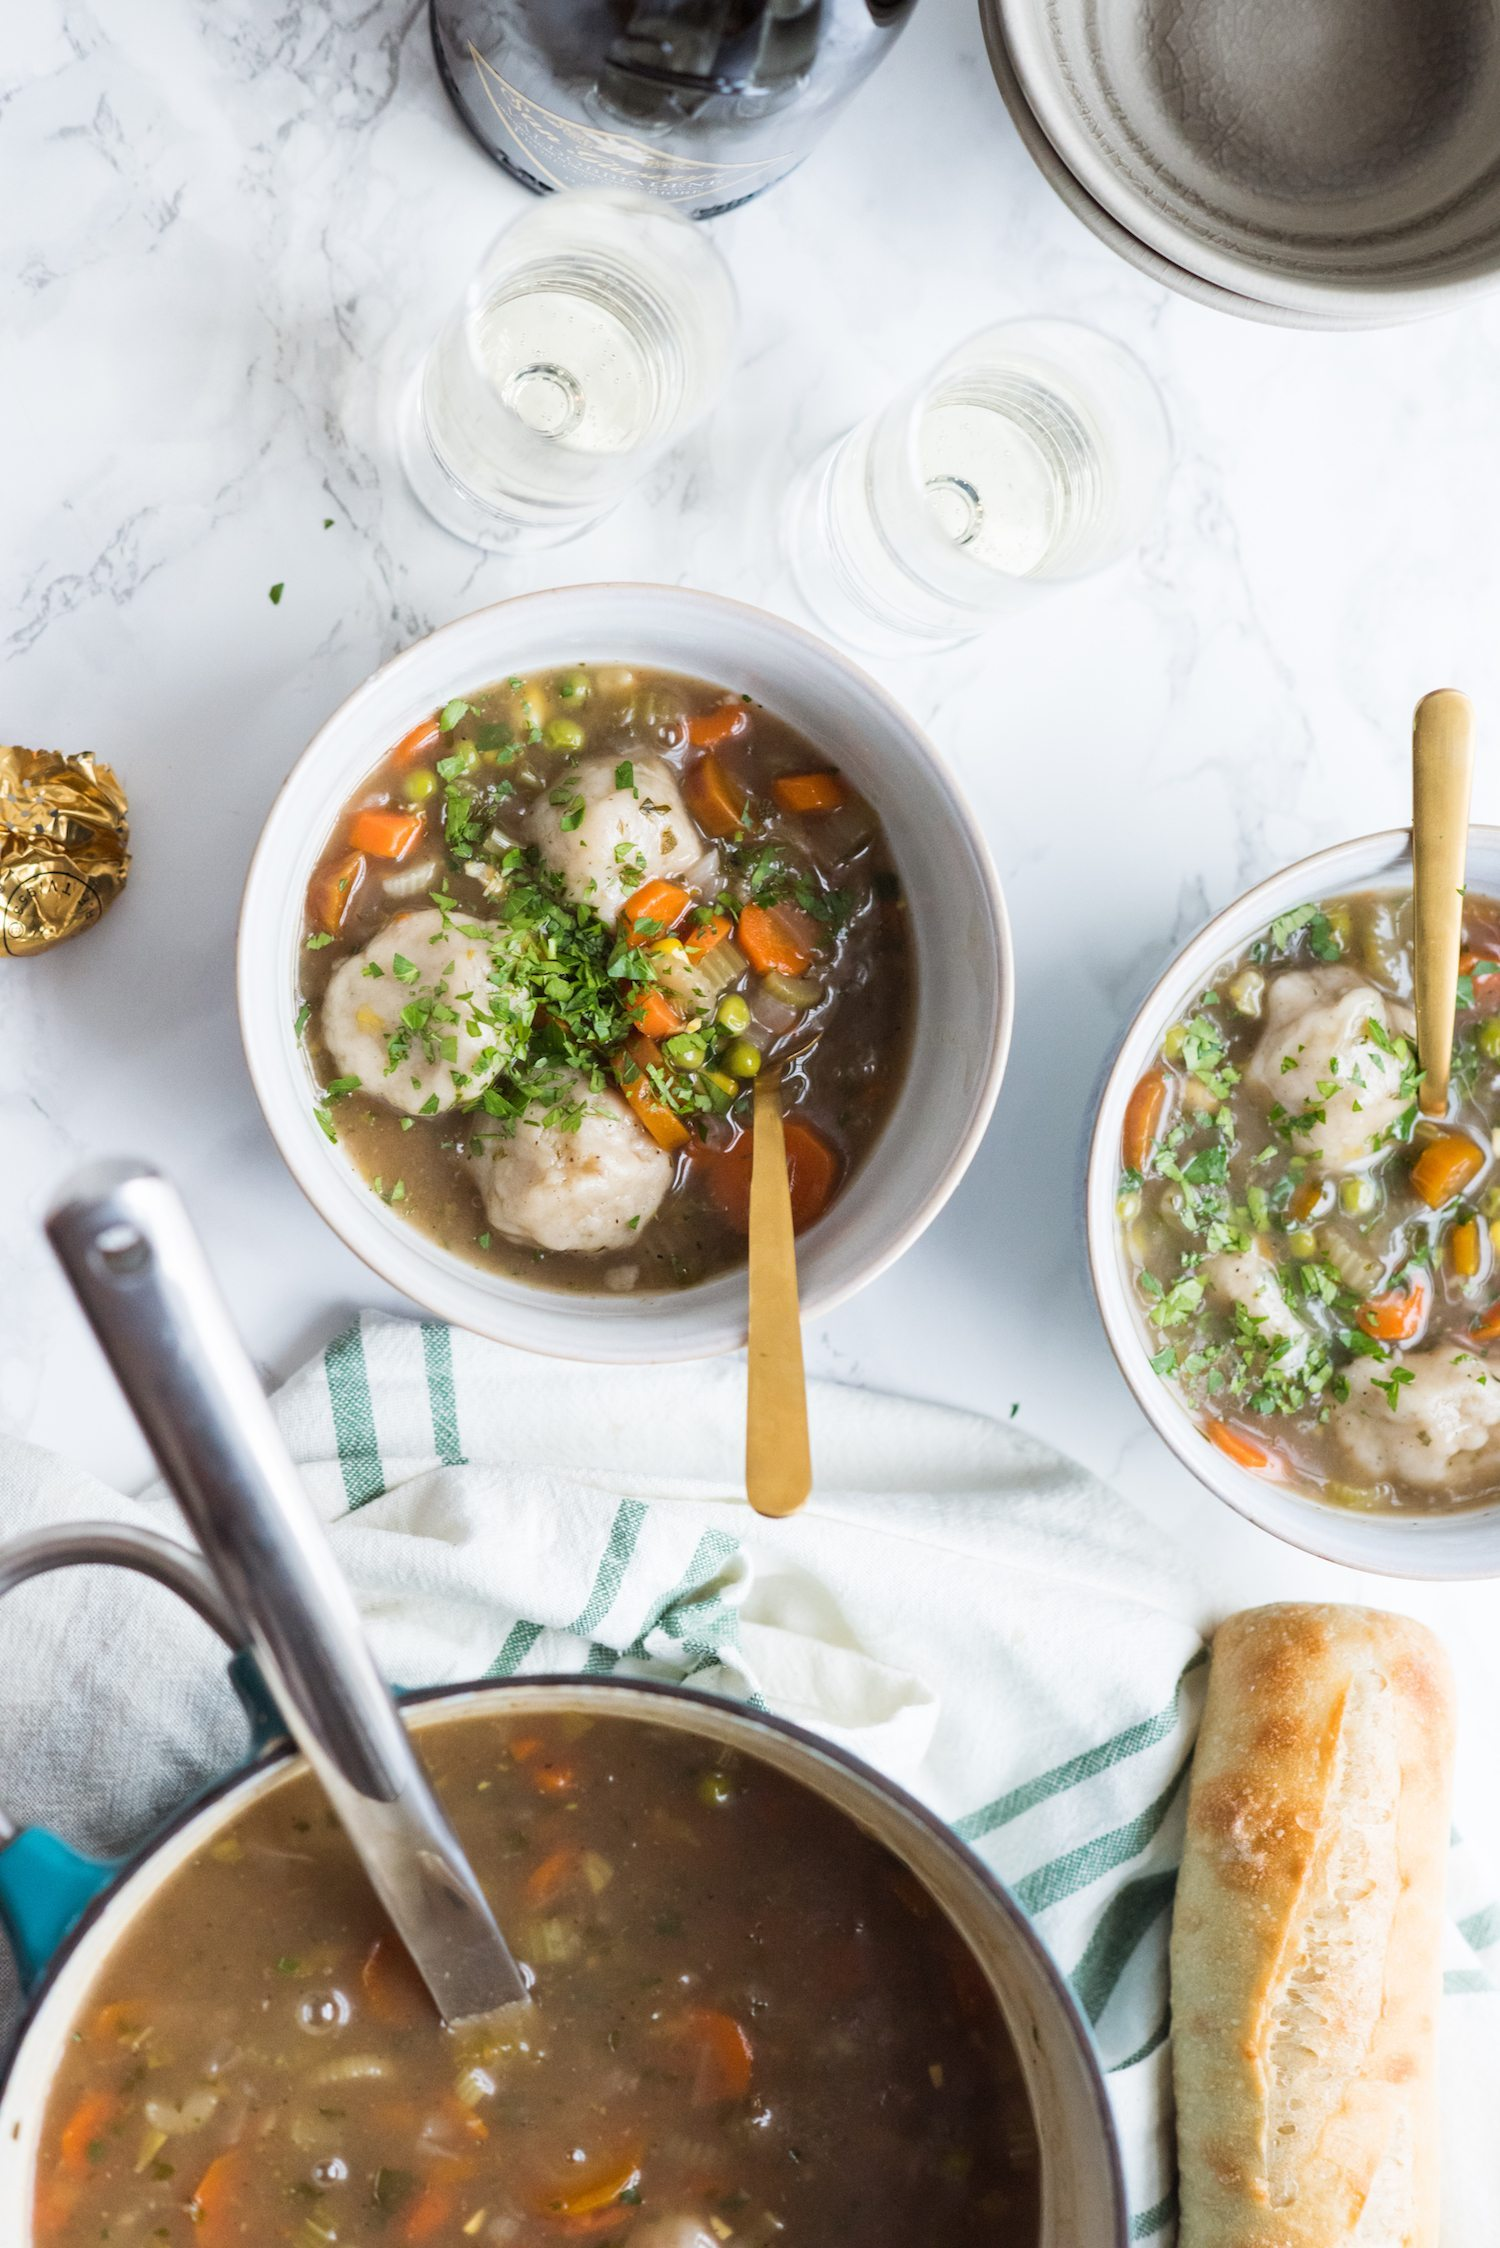 Homemade Veggie Soup with Vegan Dumplings | Entertaining tips, home renovation ideas, vegetarian recipes, party ideas and more from @cydconverse